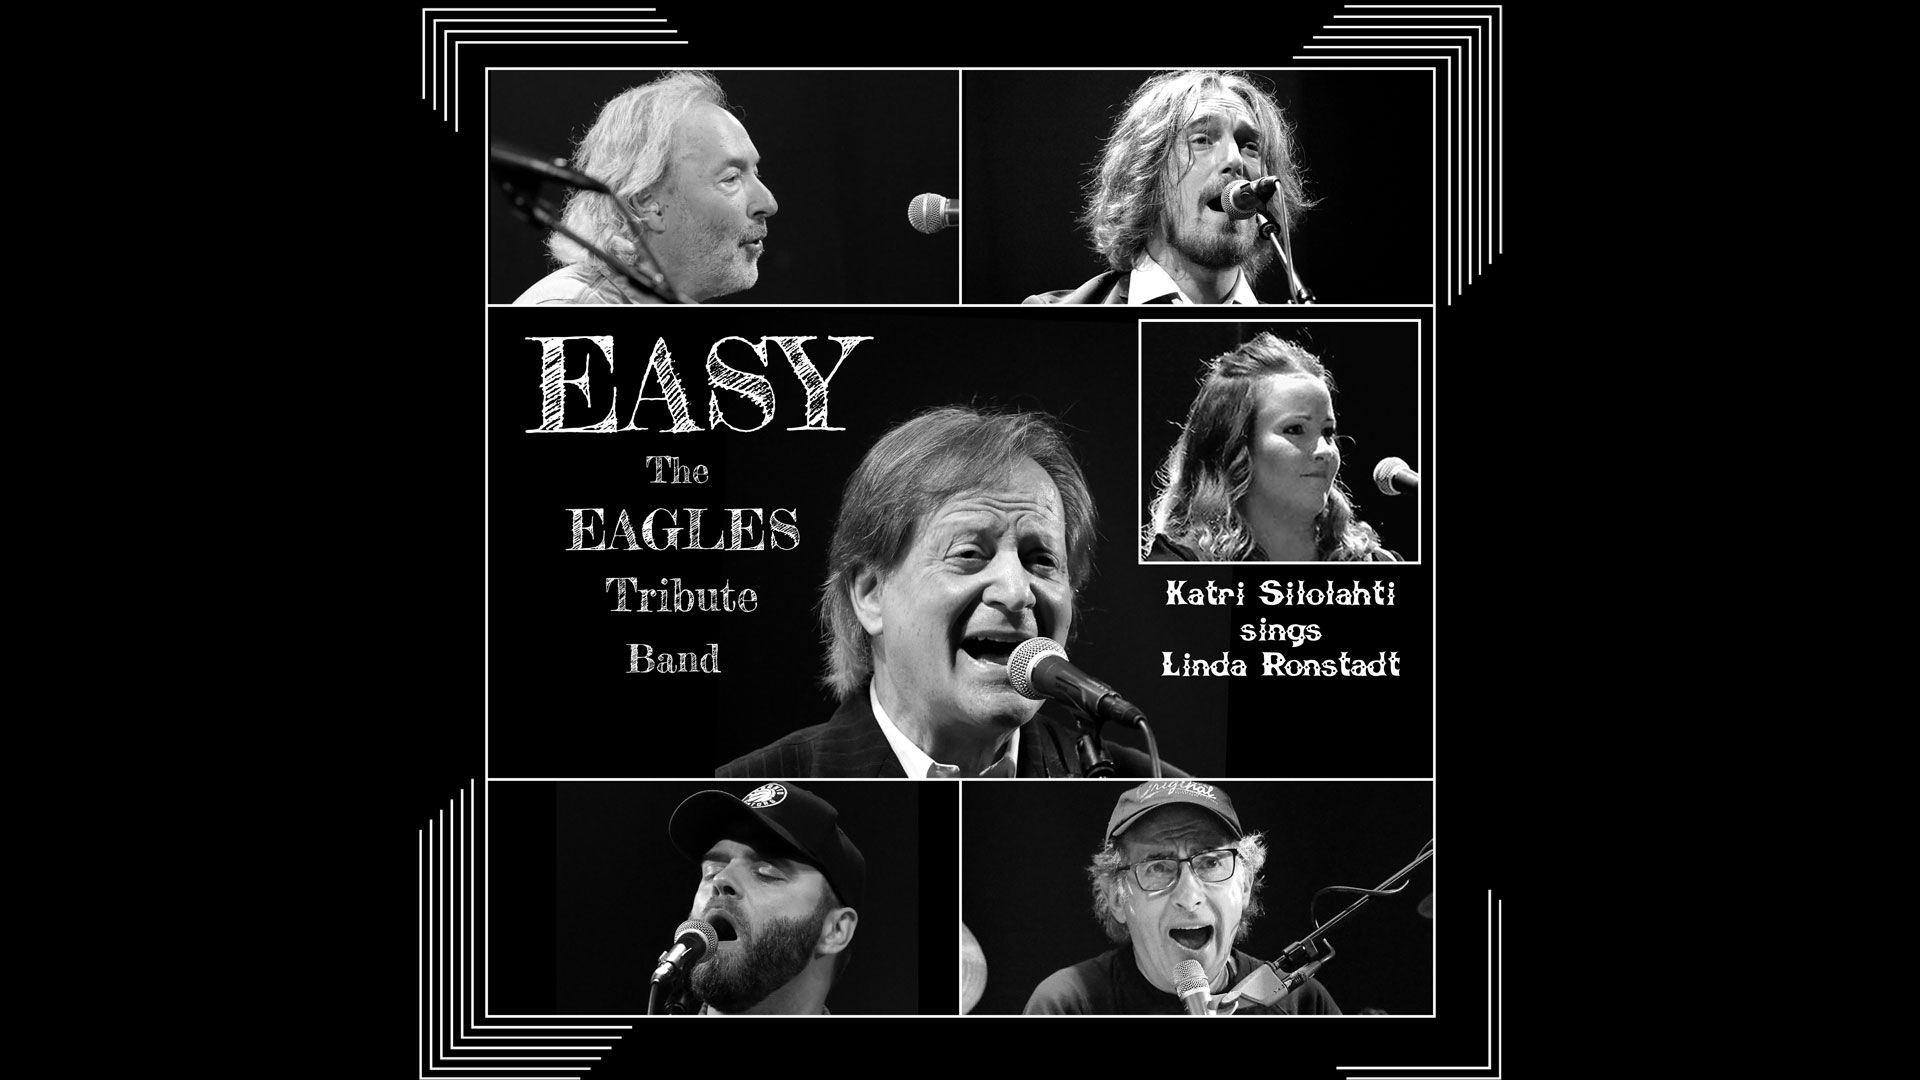 Easy - The Eagles Tribute Band la 1.8.2020 klo 18.00